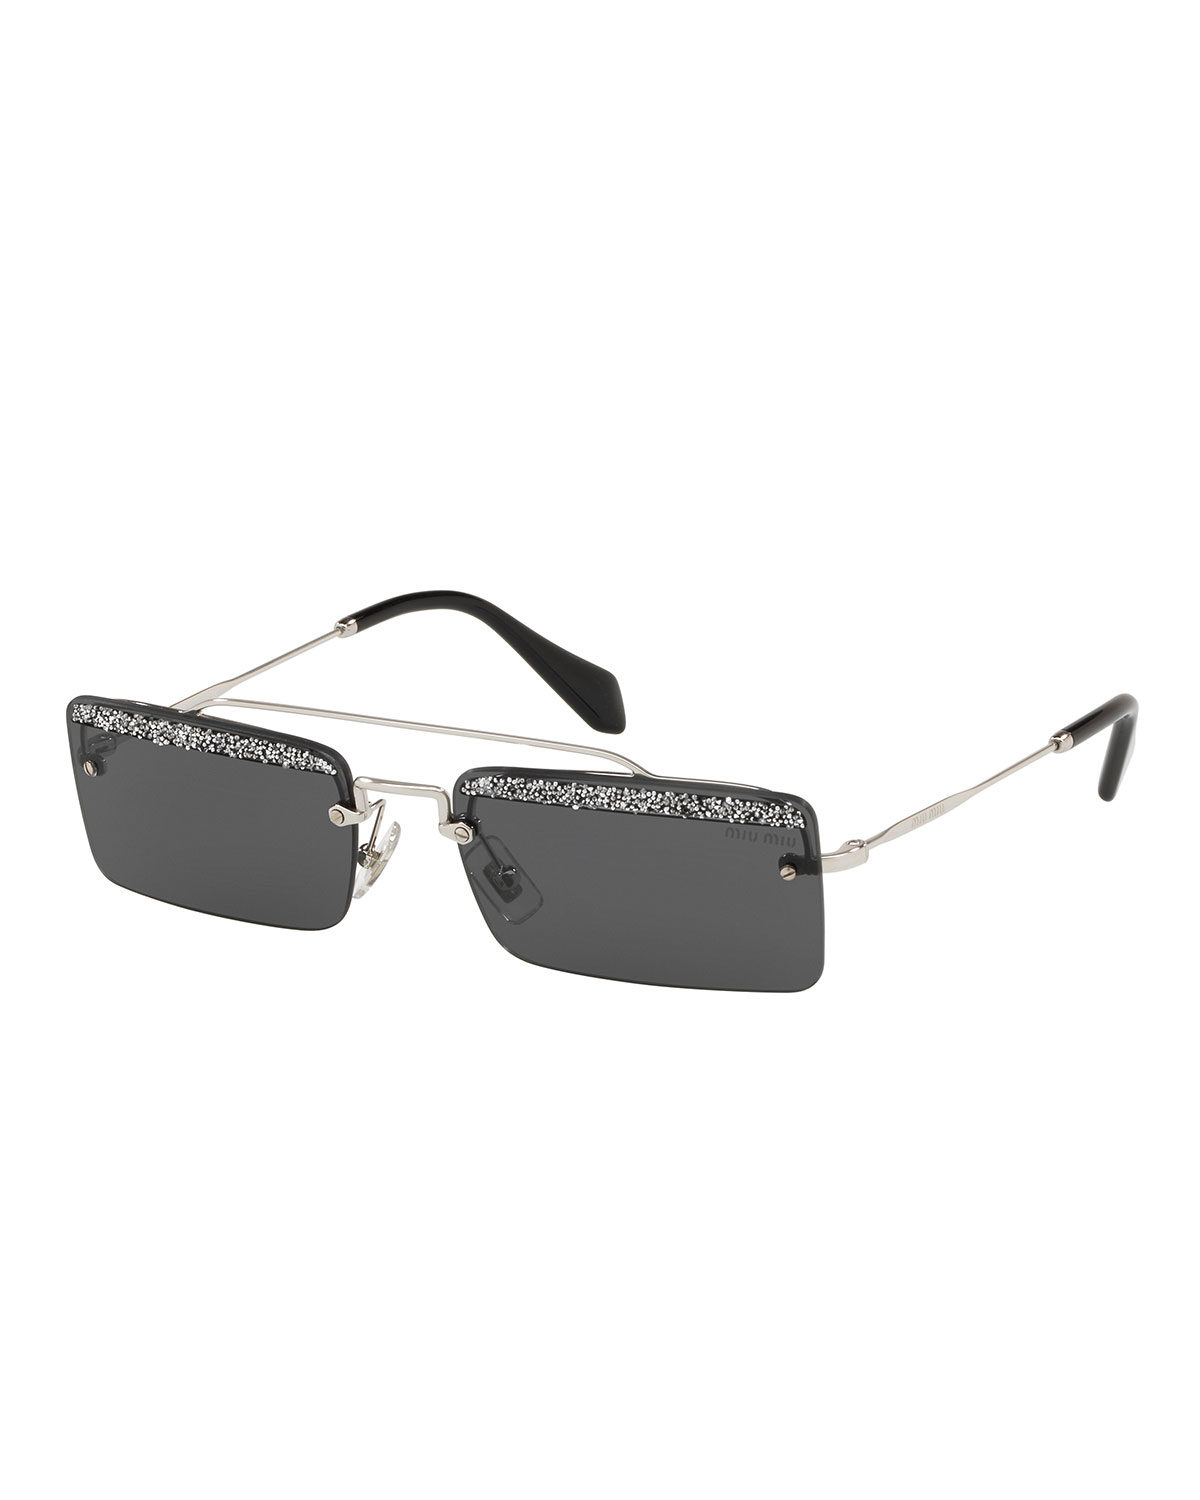 Women'S Embellished Brow Bar Square Sunglasses, 58Mm in Black